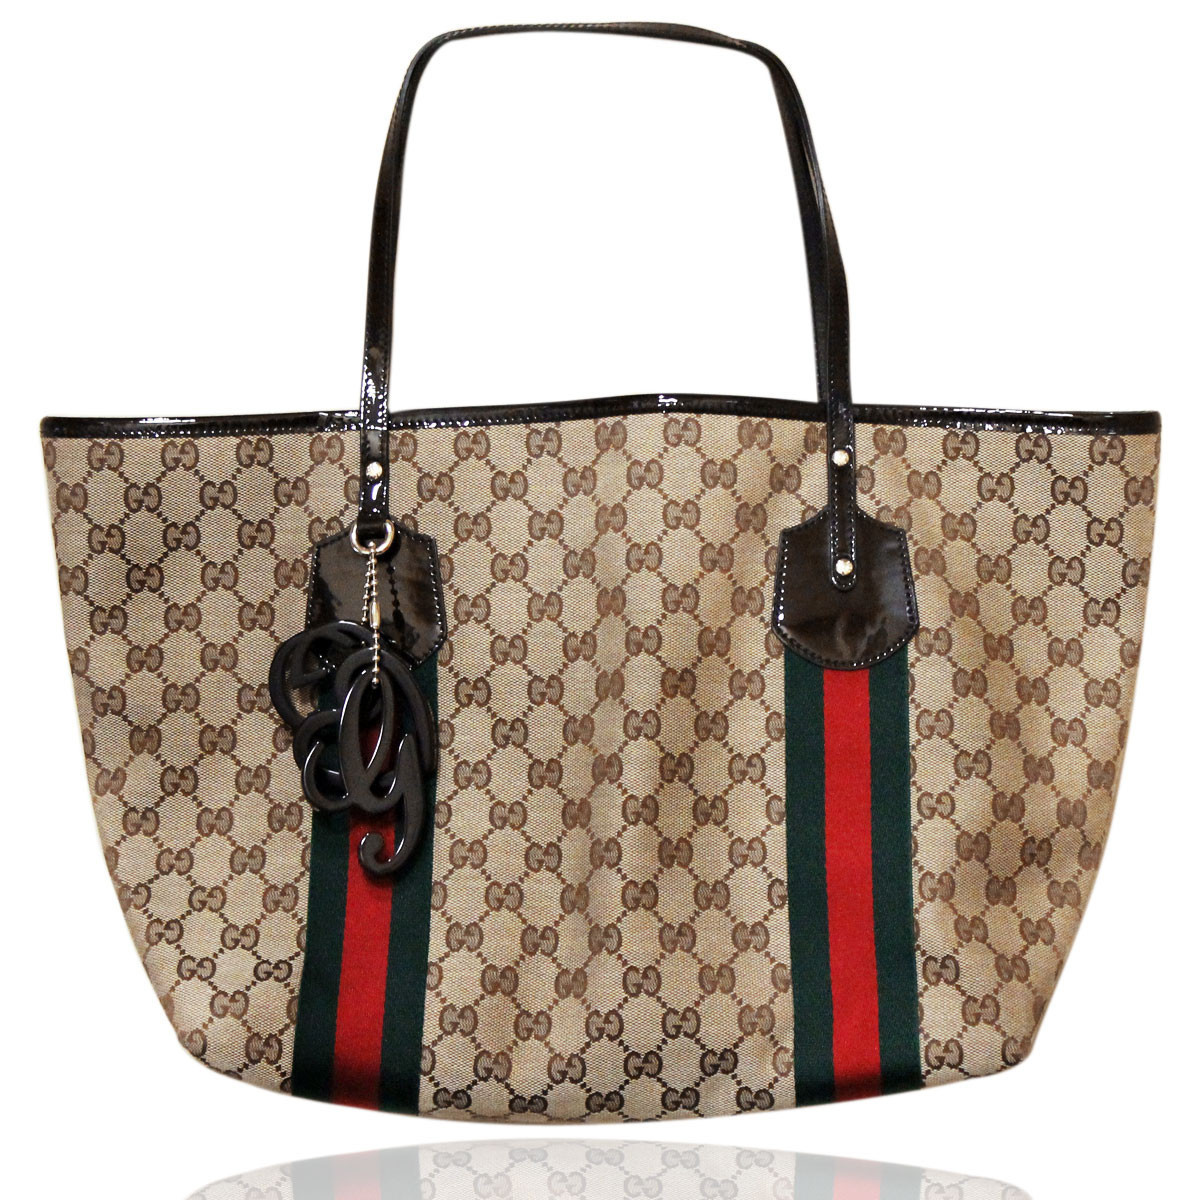 Gucci Patent Leather Canvas Charm Per Tote Bag